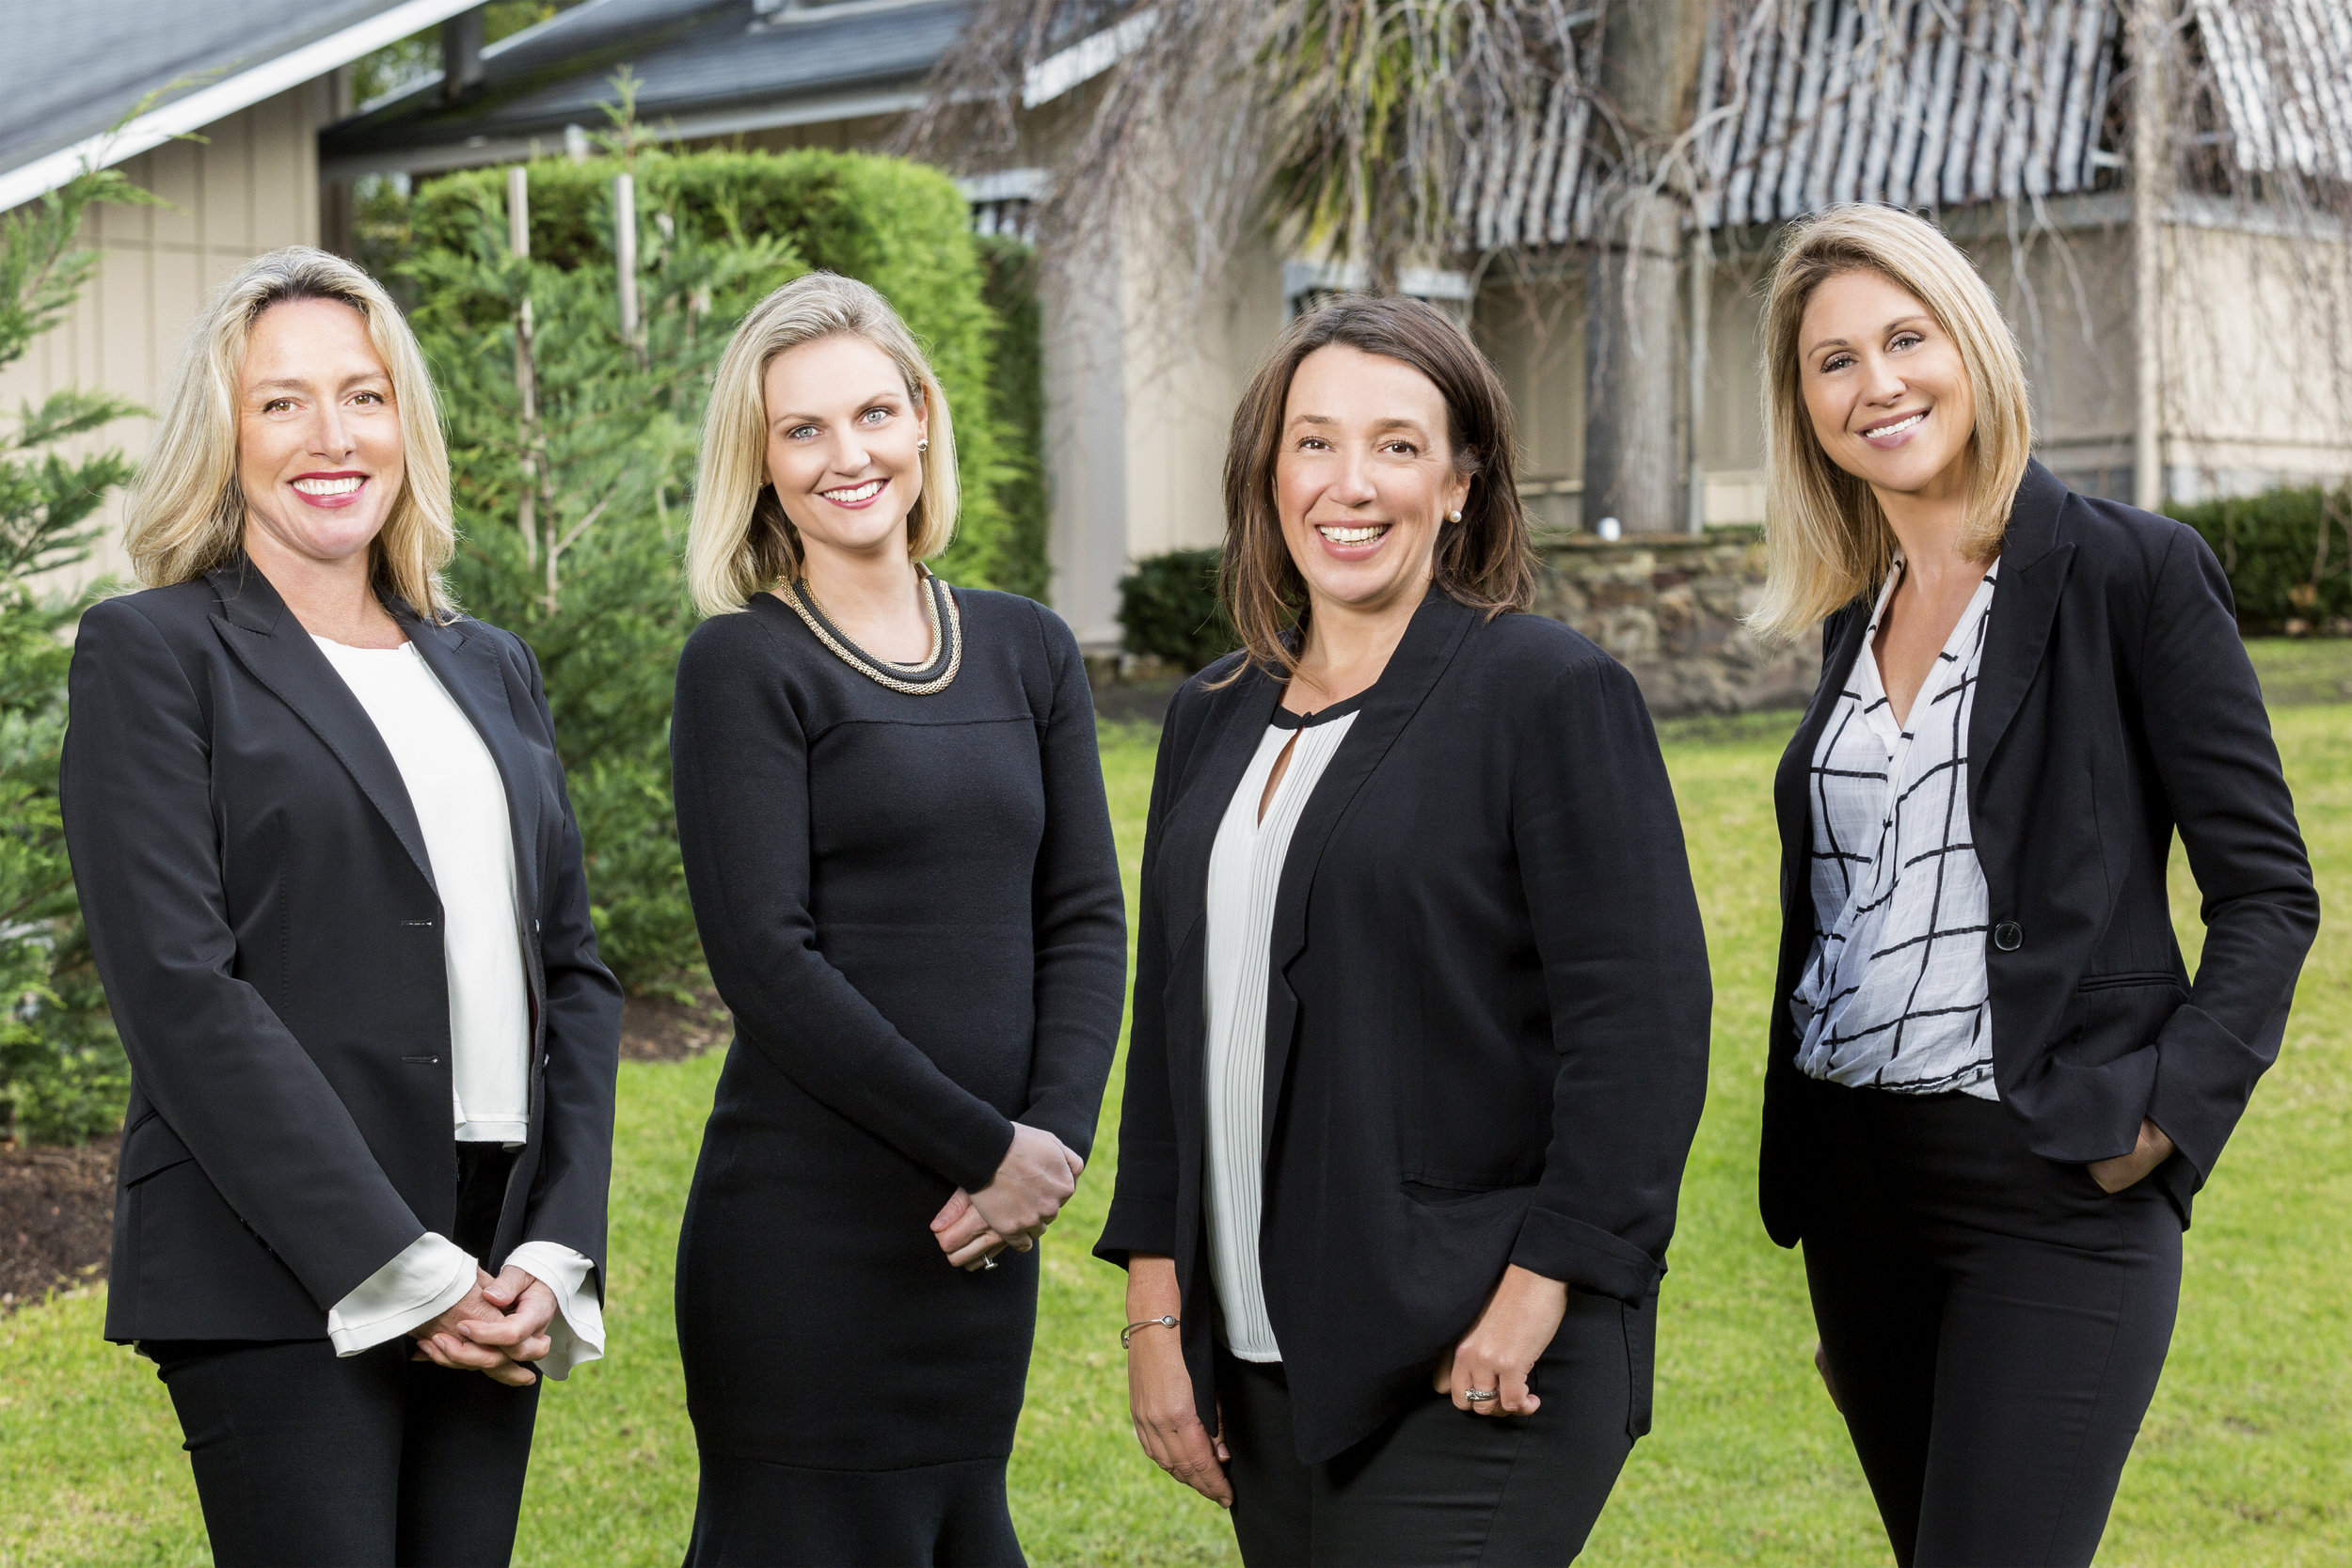 Image from left to right: Linda Lane, Sales Support and Client Services; Amber Sealey, Sales Assistant; Vicki Sayers, Director and Licensed Estate Agent; and Katie Taplin, Office Manager (Marketing and Sales Administration).